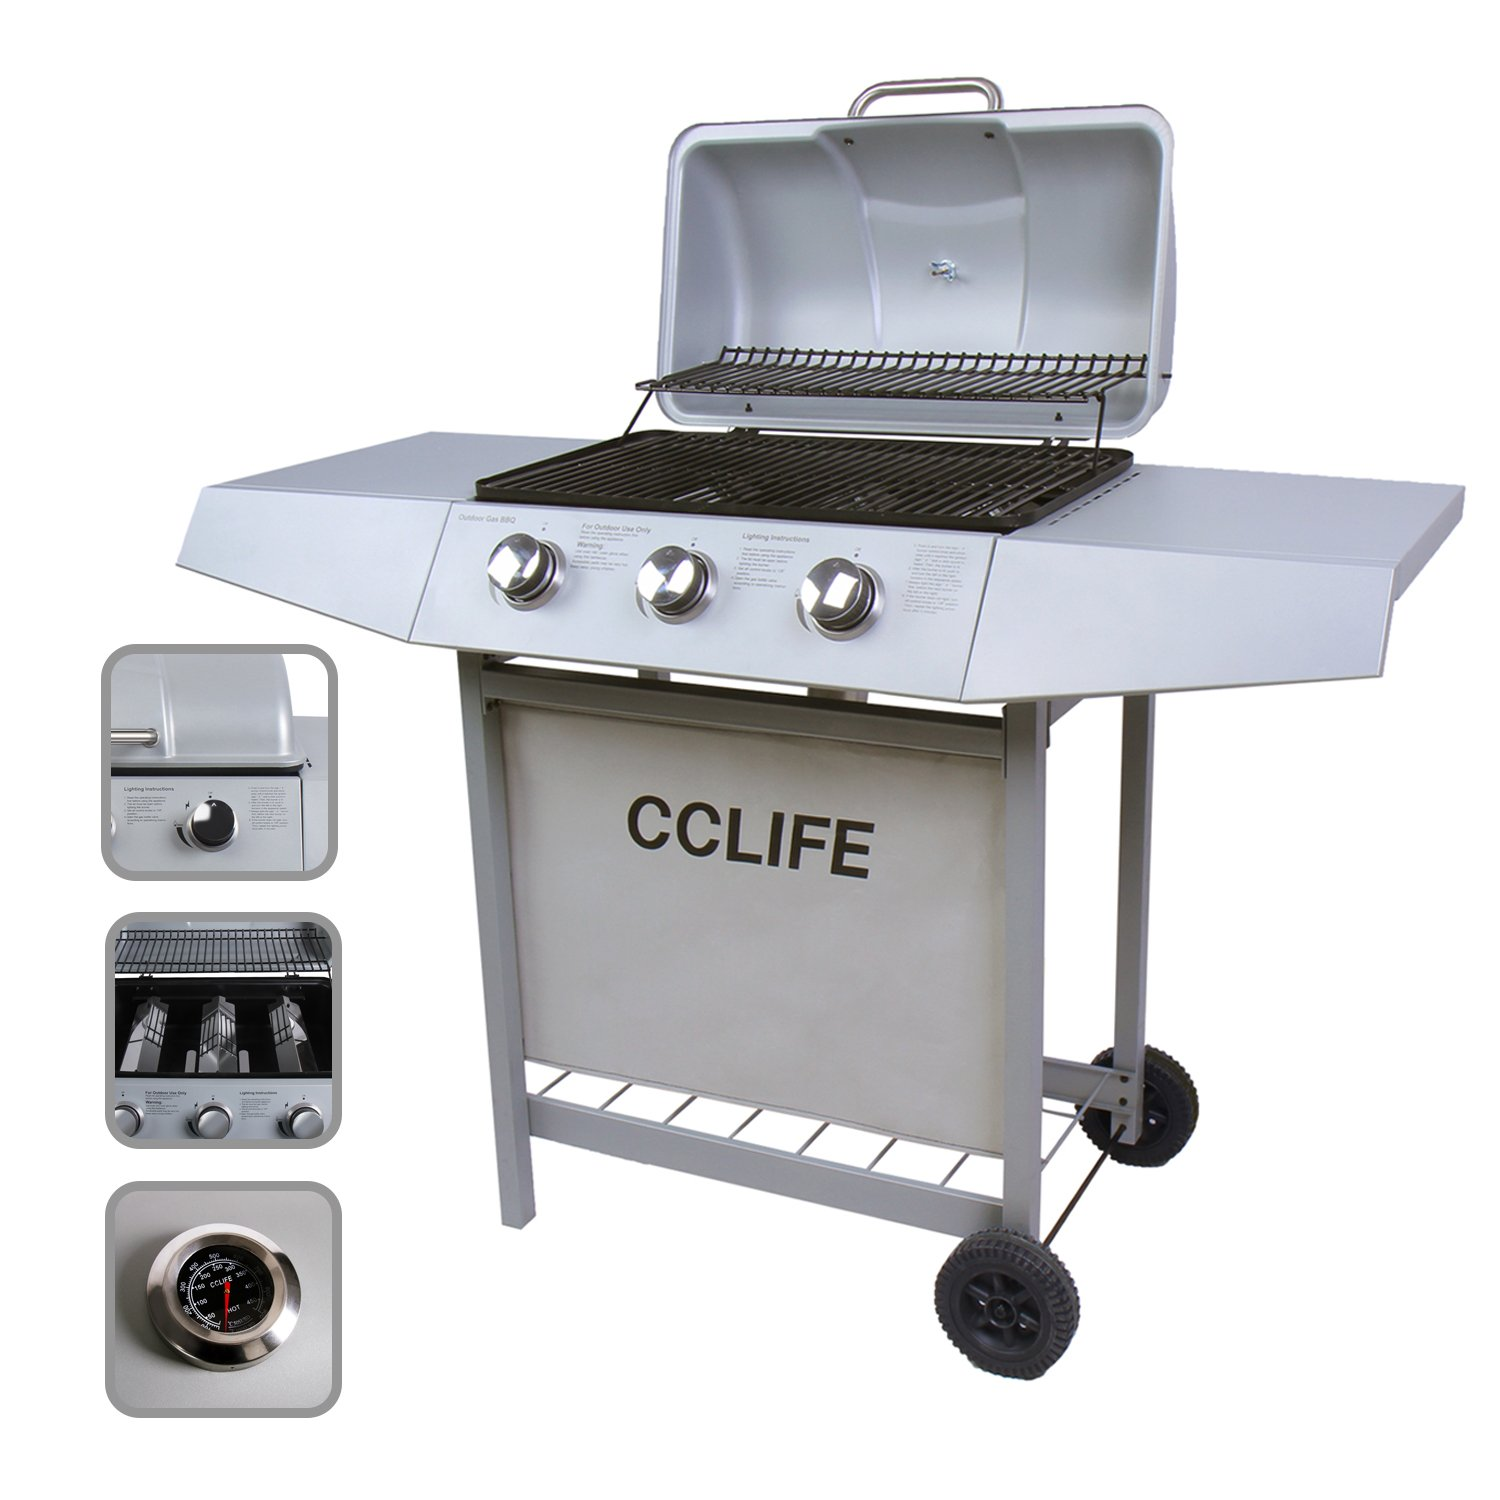 CCLIFE Barbecue grill gas barbecue with 3/4/5/6 main burners in silver or black, Colour:Silver, Size:3 Brenner